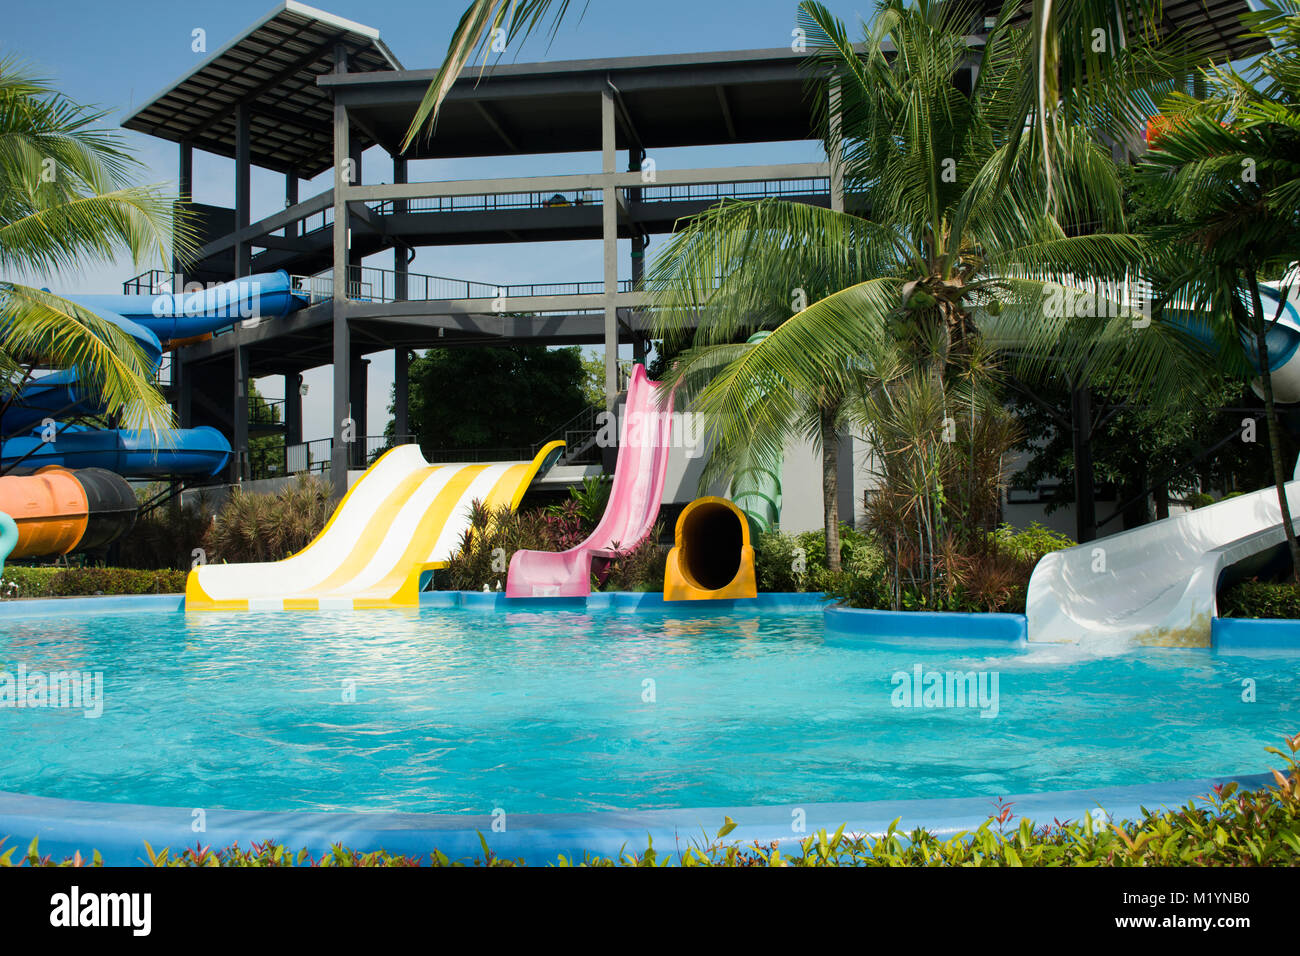 Big Slide Water And In Pool At Outdoor For People Playing Swimming Park Chonburi Thailand